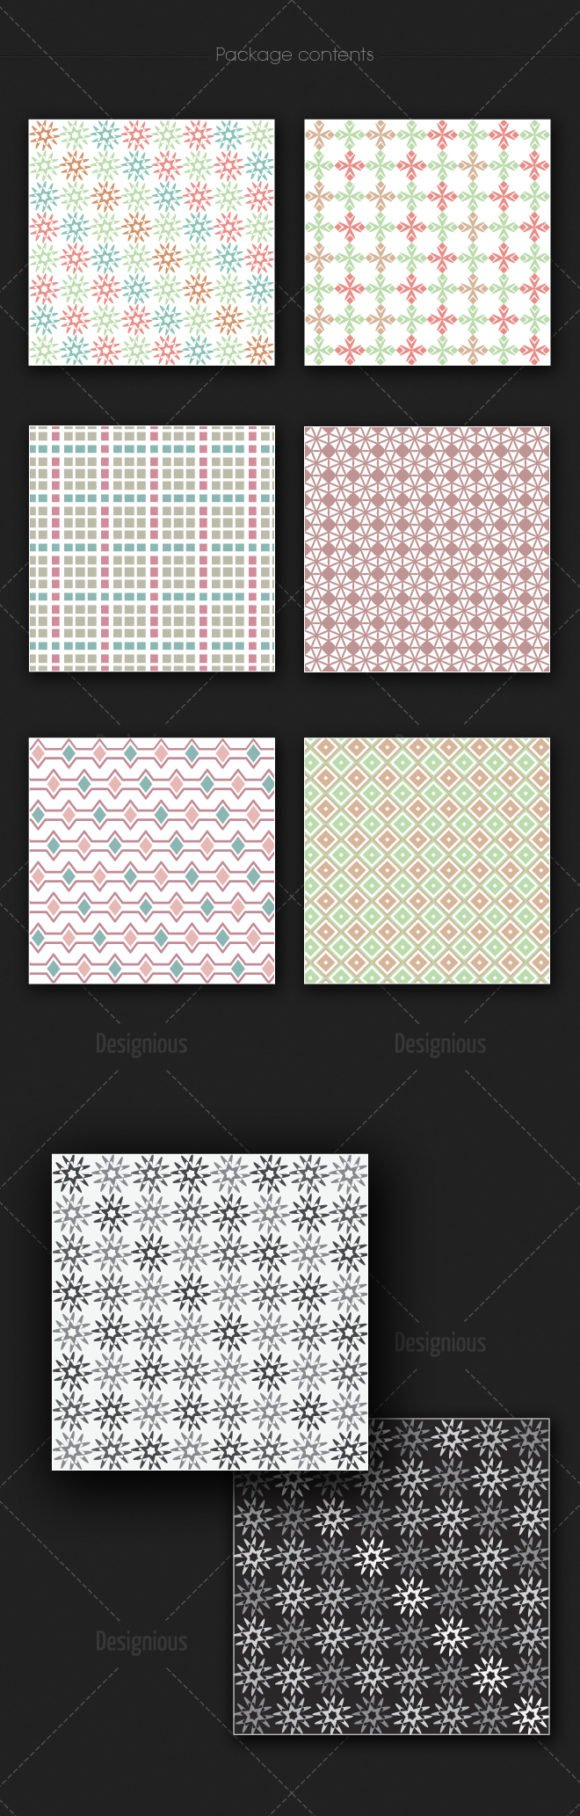 Seamless Patterns Vector Pack 177 2